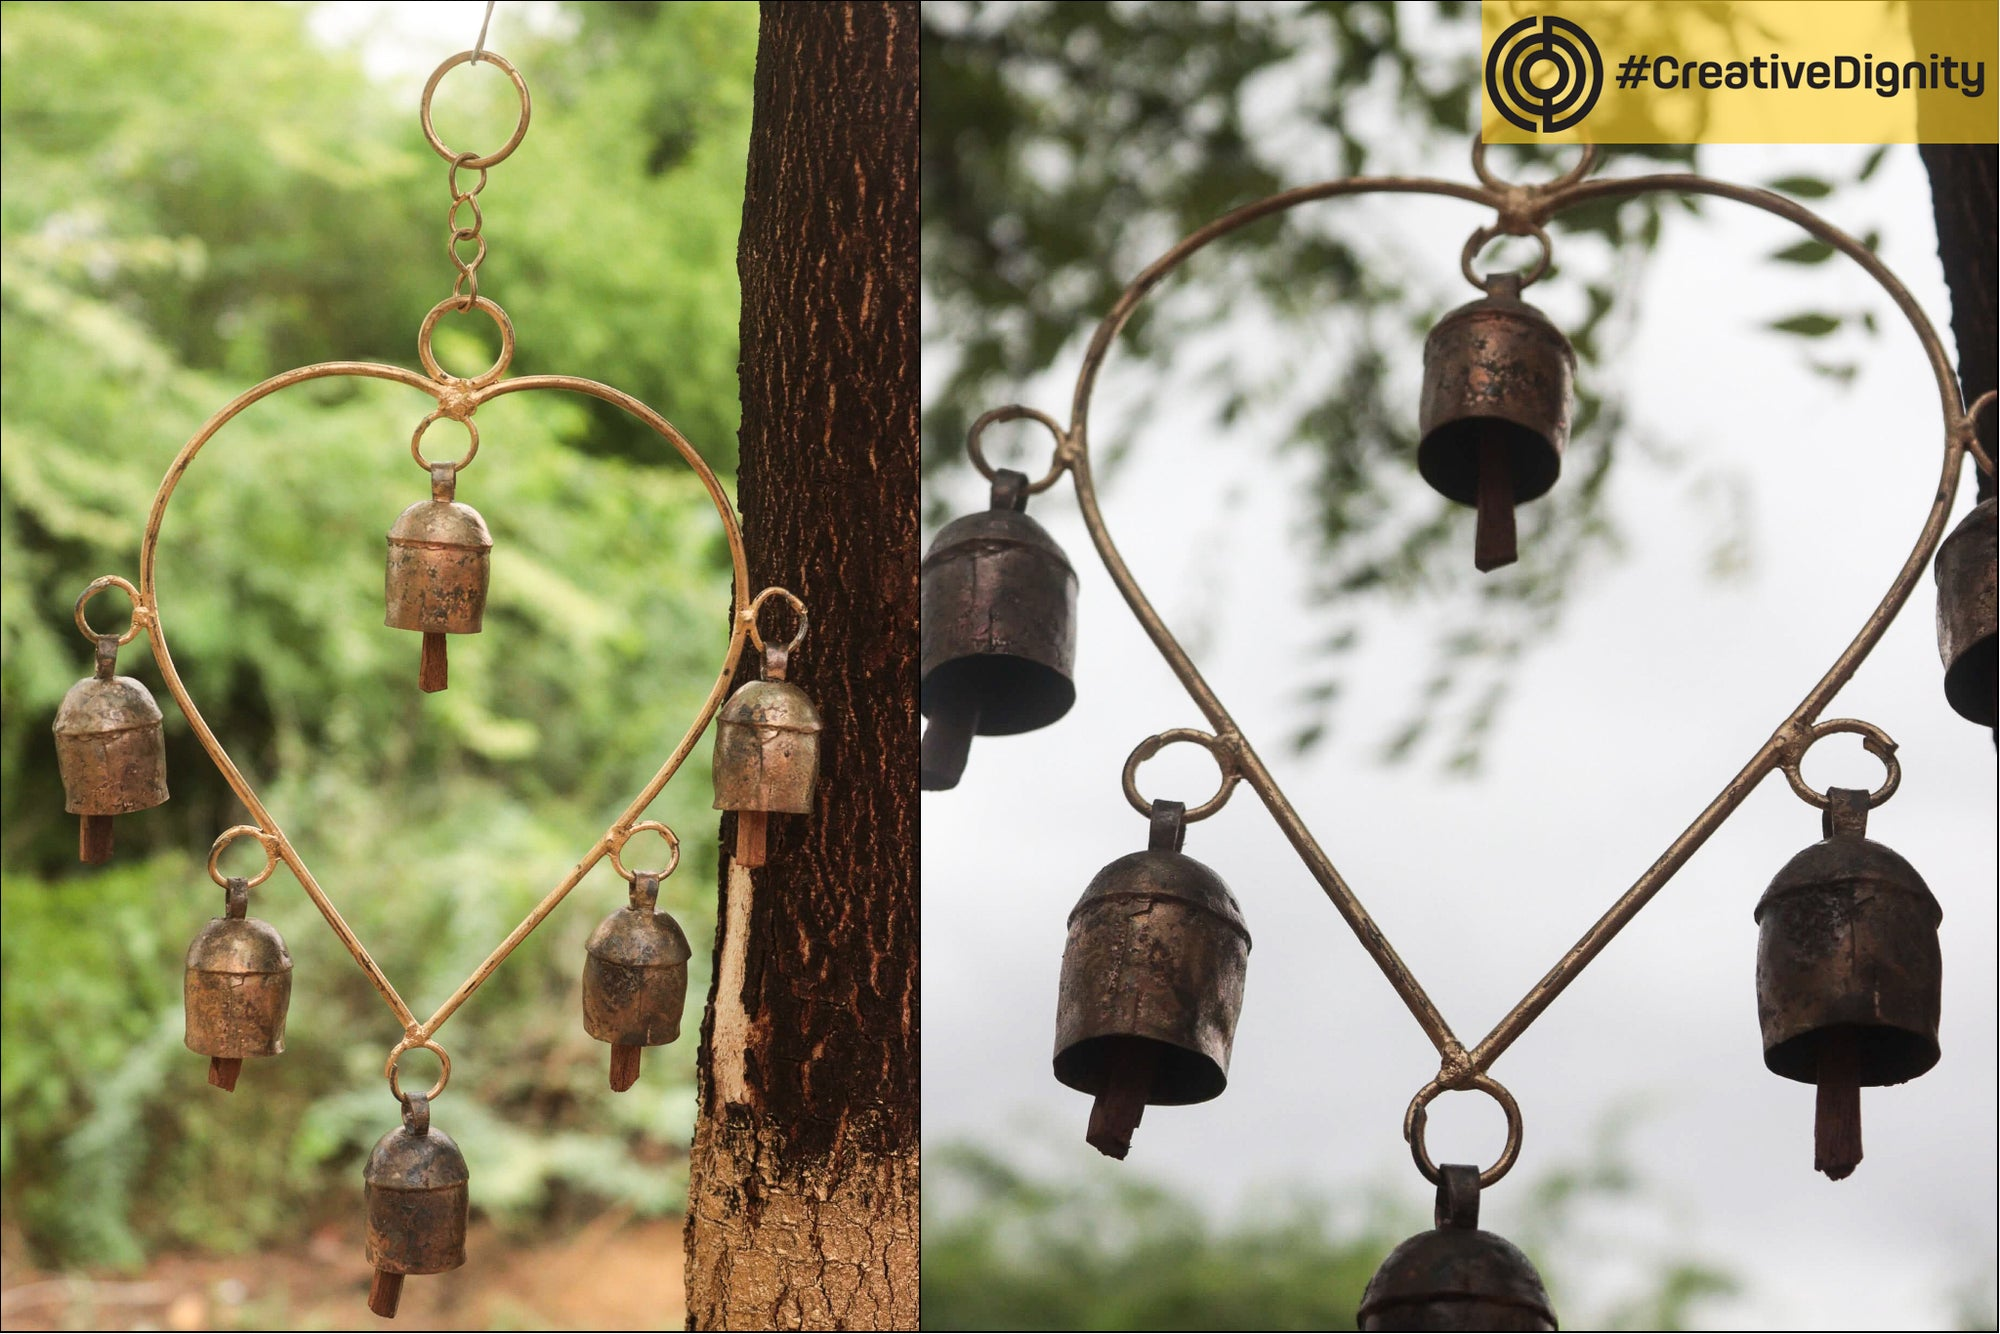 Kutch Copper Coated 6 Bell Hanging by Janmamad Luhar